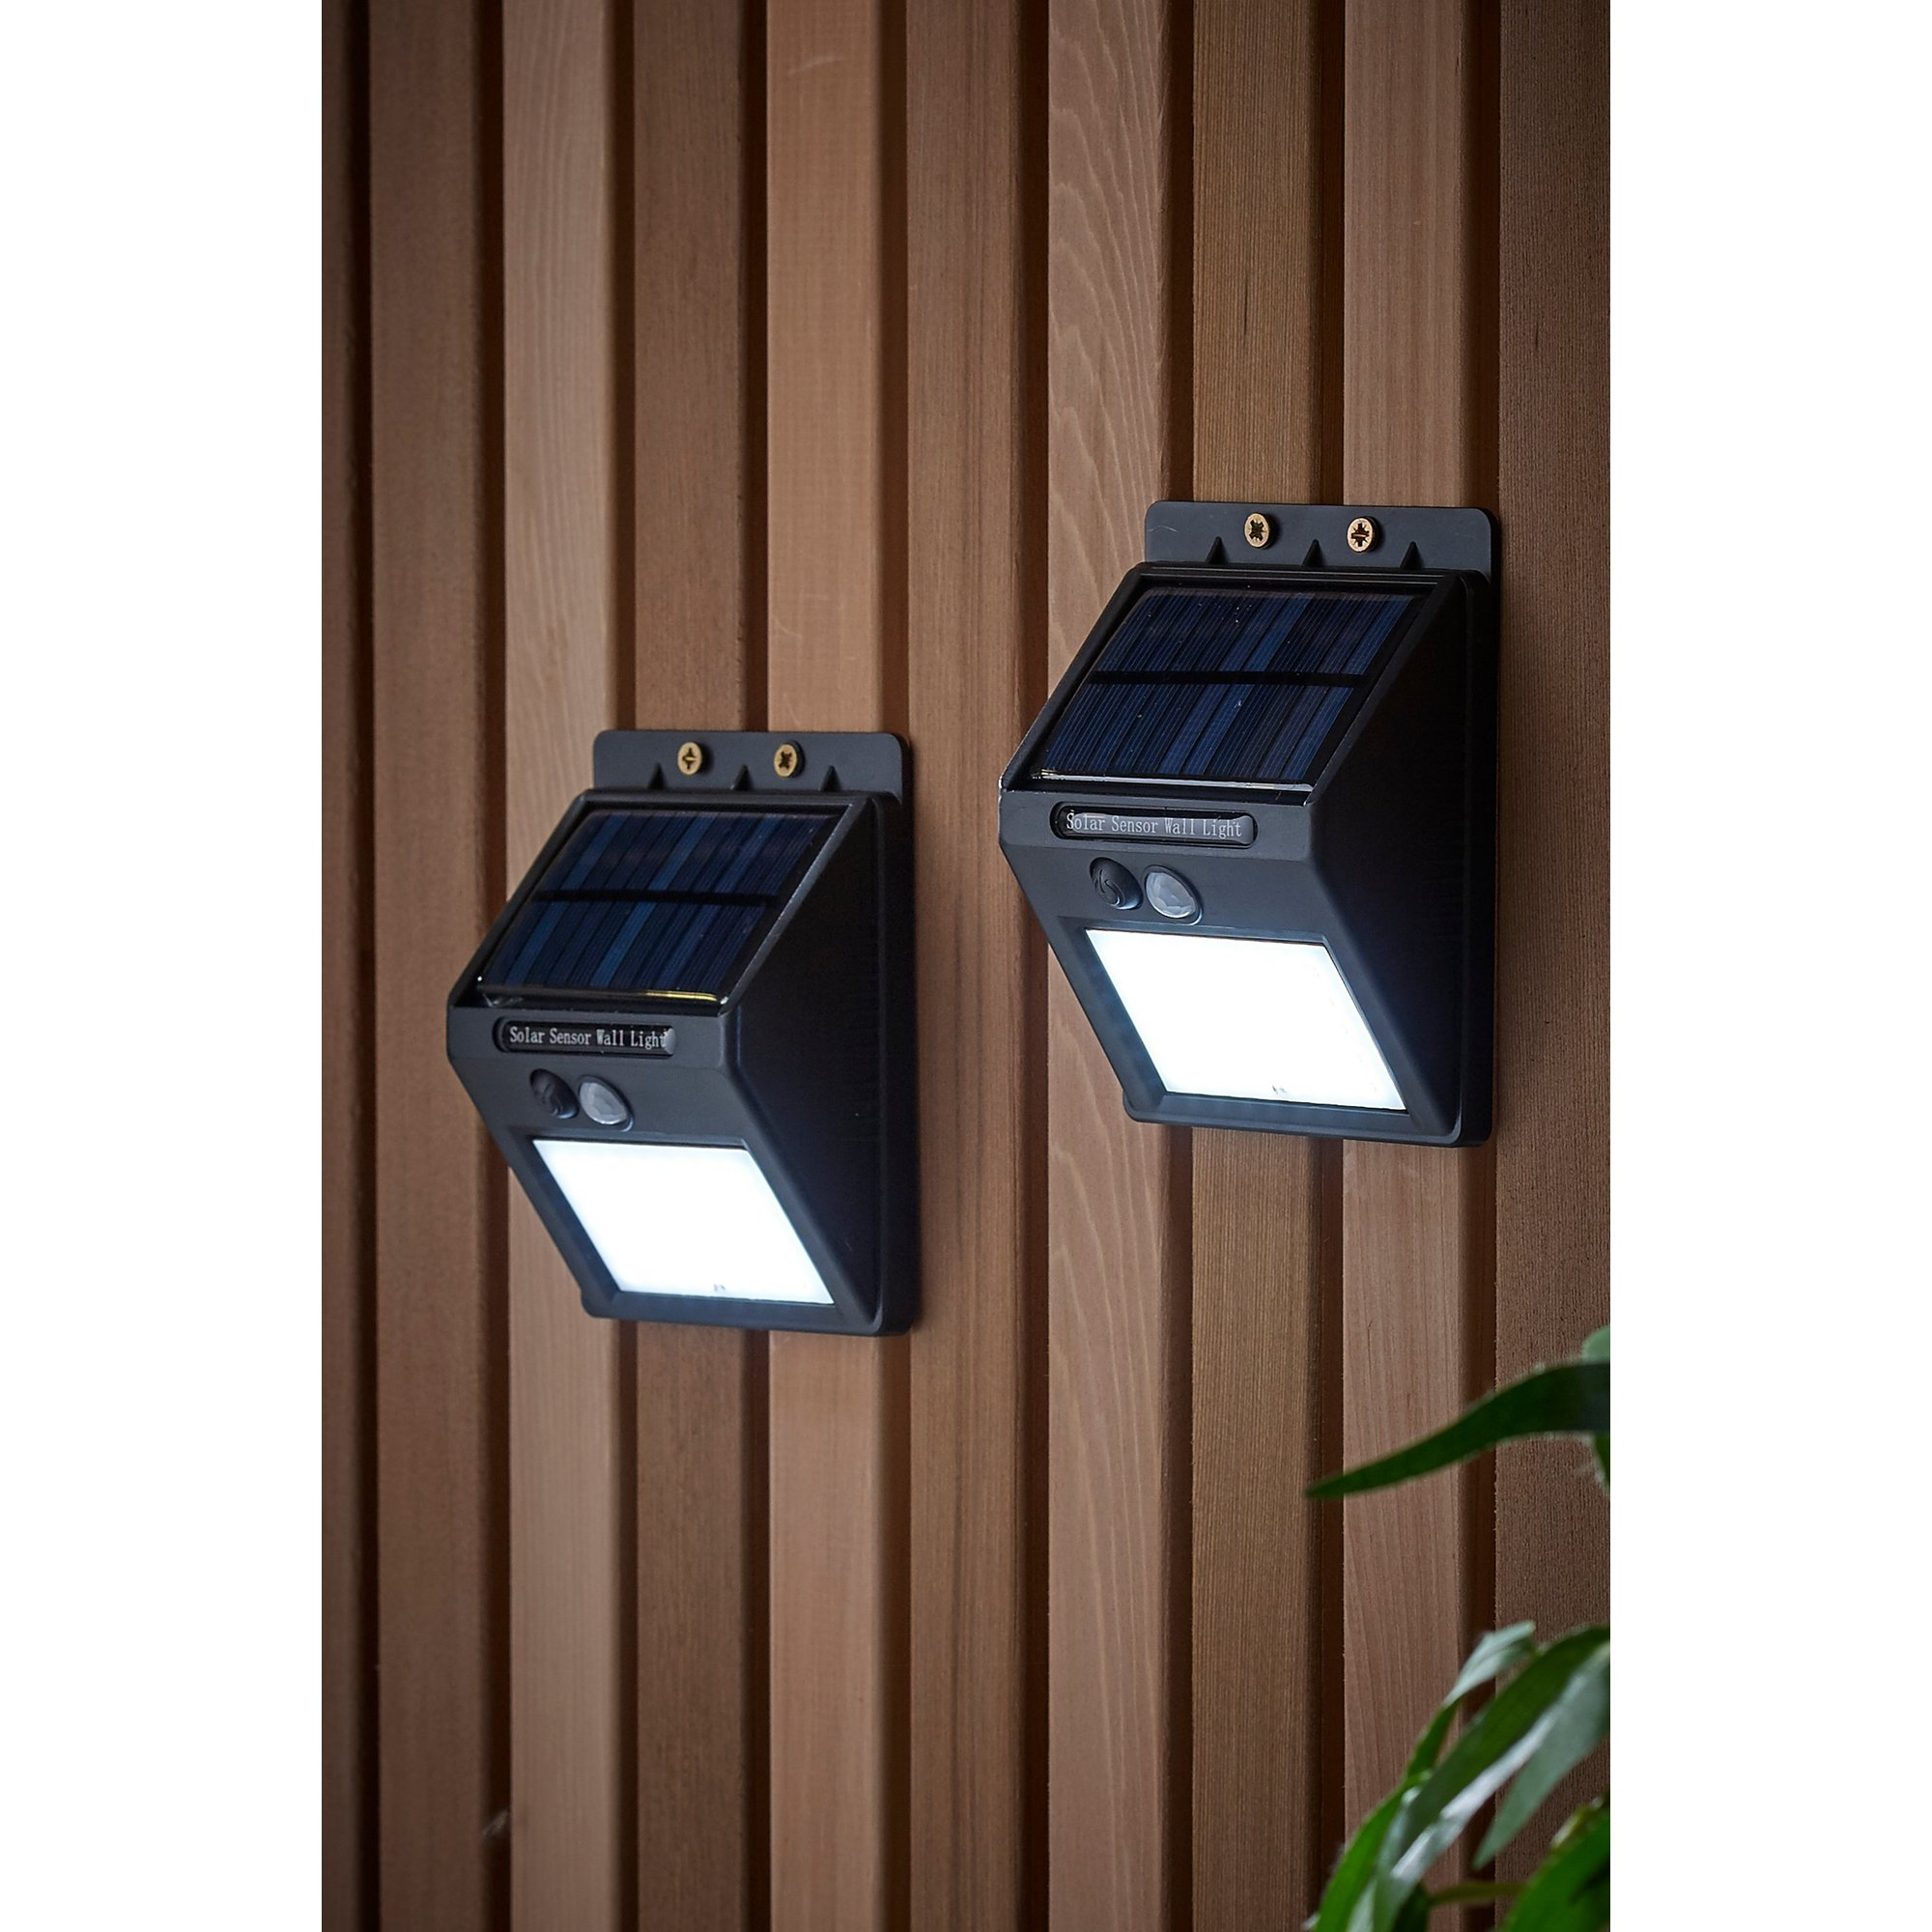 Image of Pair of Security Lights